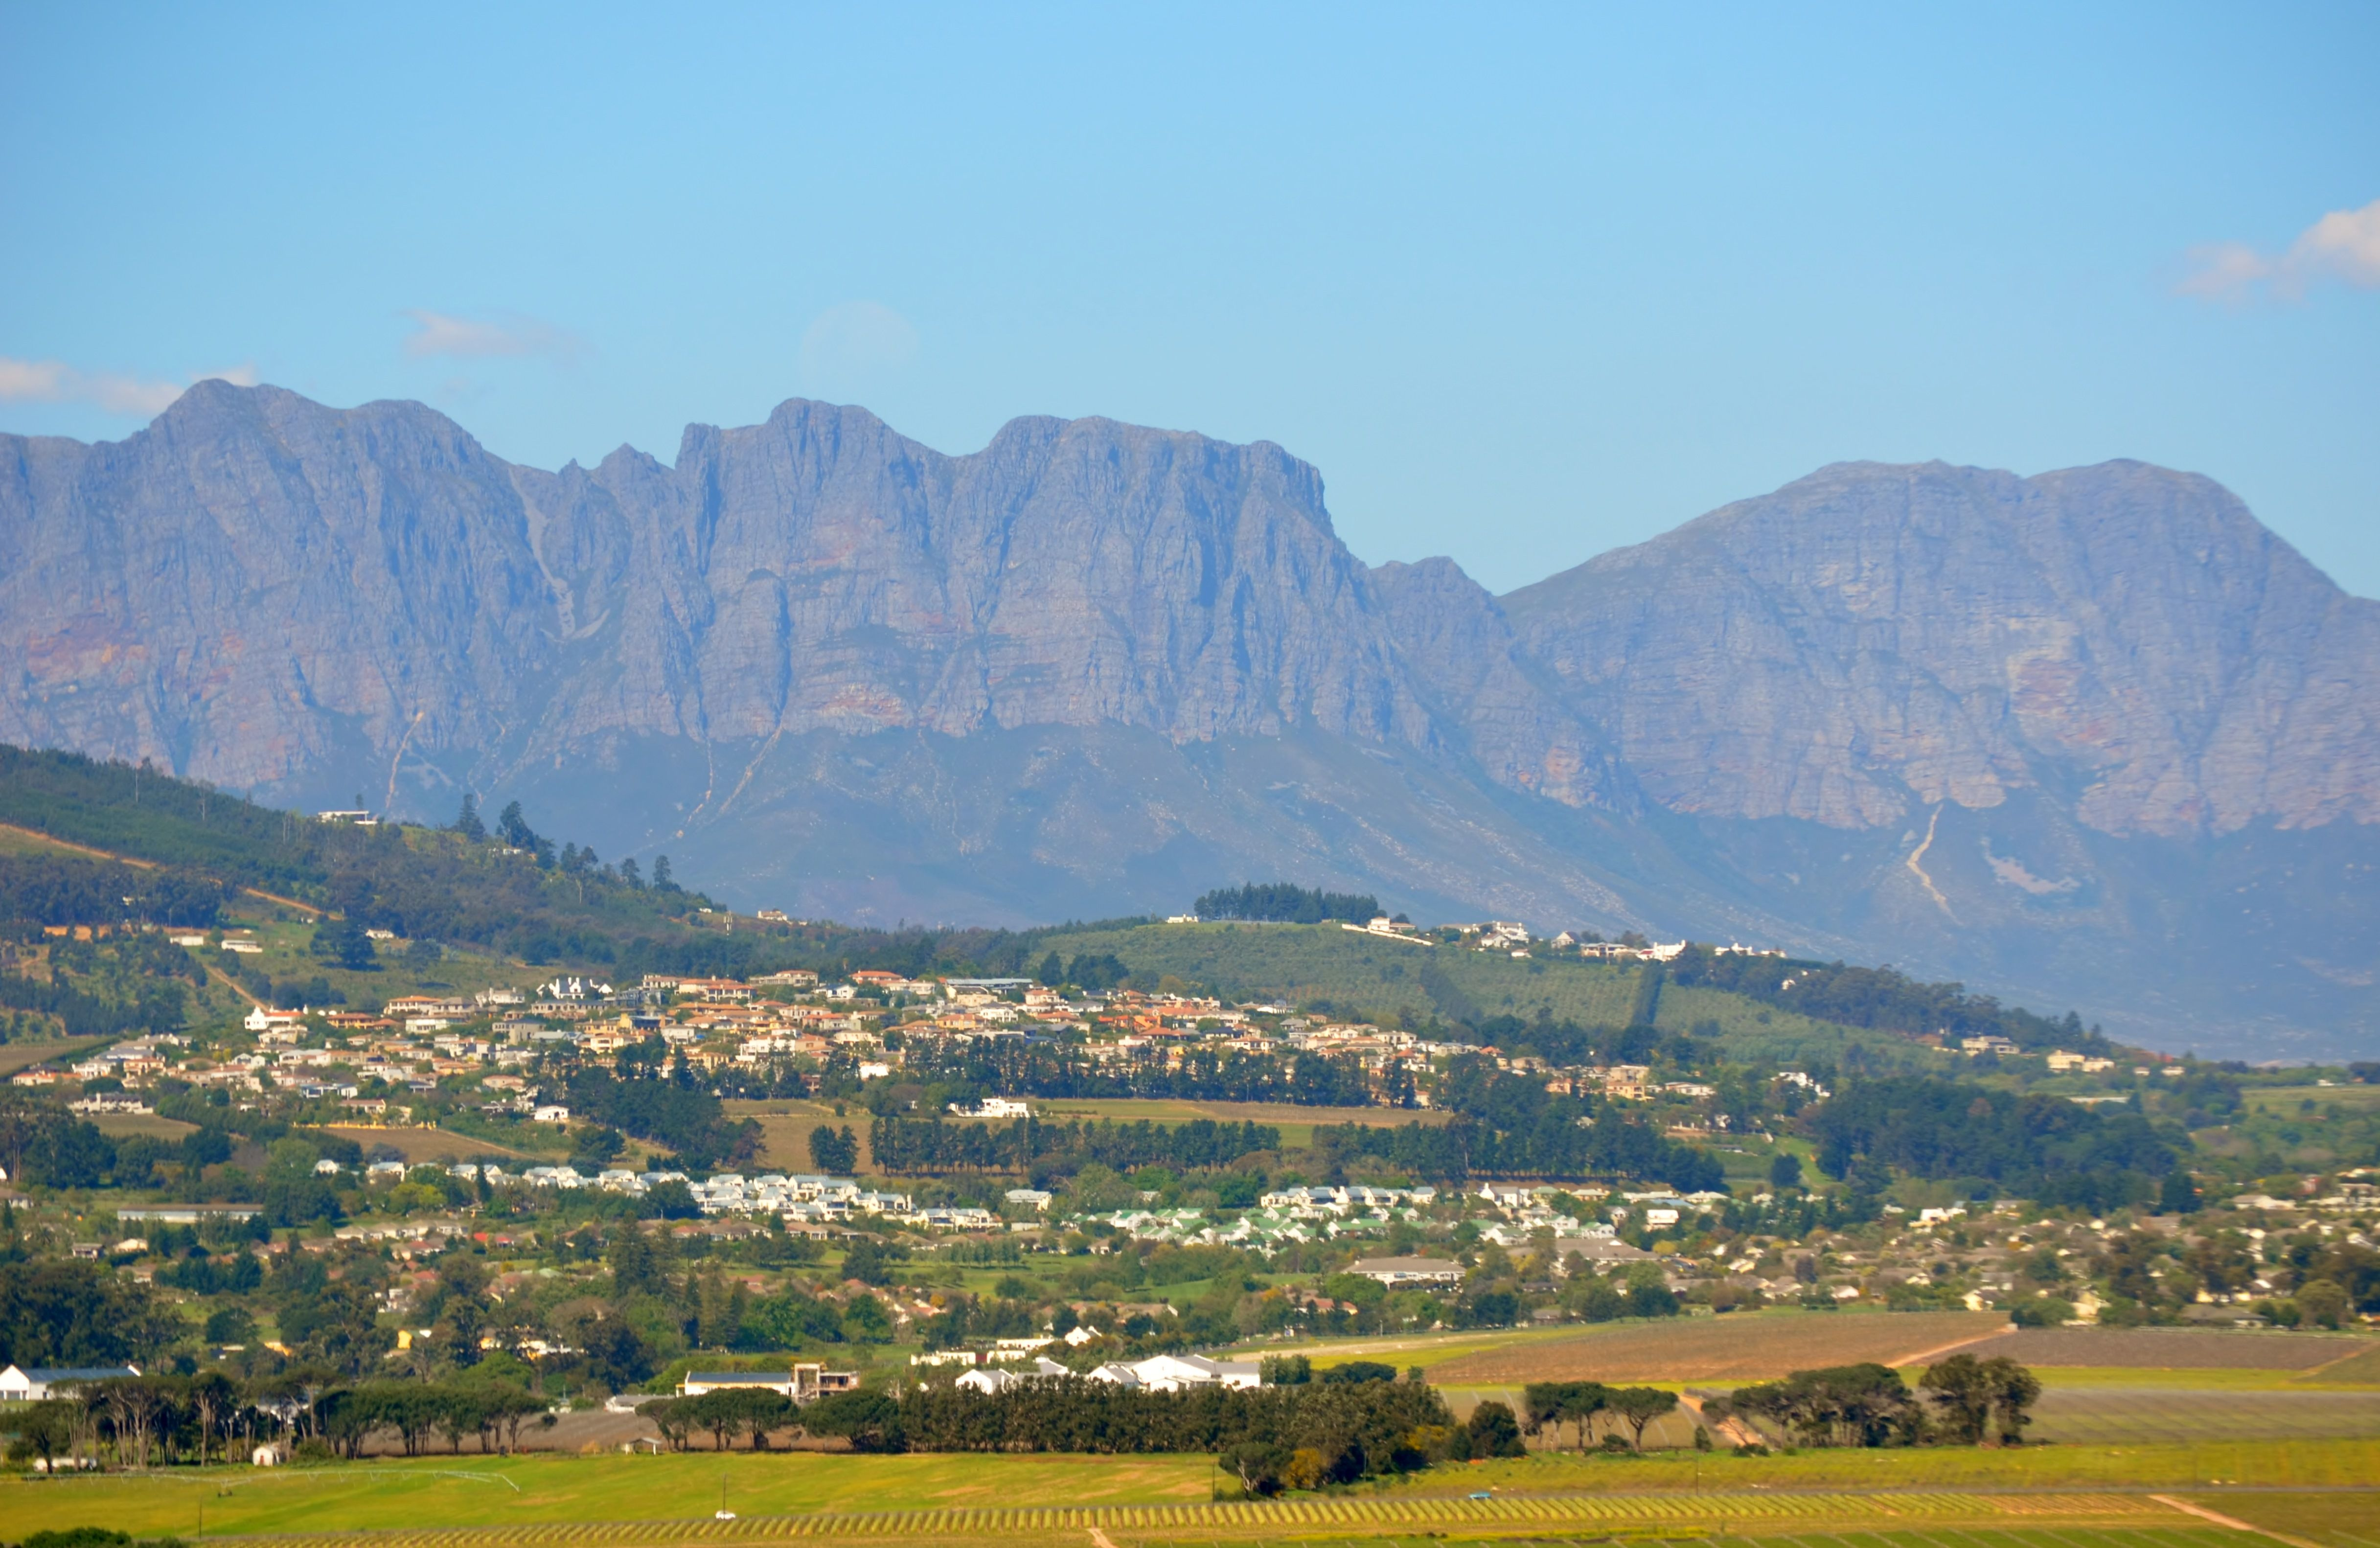 Somerset West suburbs such as Helena Heights and Monte Sereno as seen from the western side of the town. Hottentots-Holland mountain range as the backdrop. #MonteSoreno #HelenaHeights #SomersetWest #CapeTown